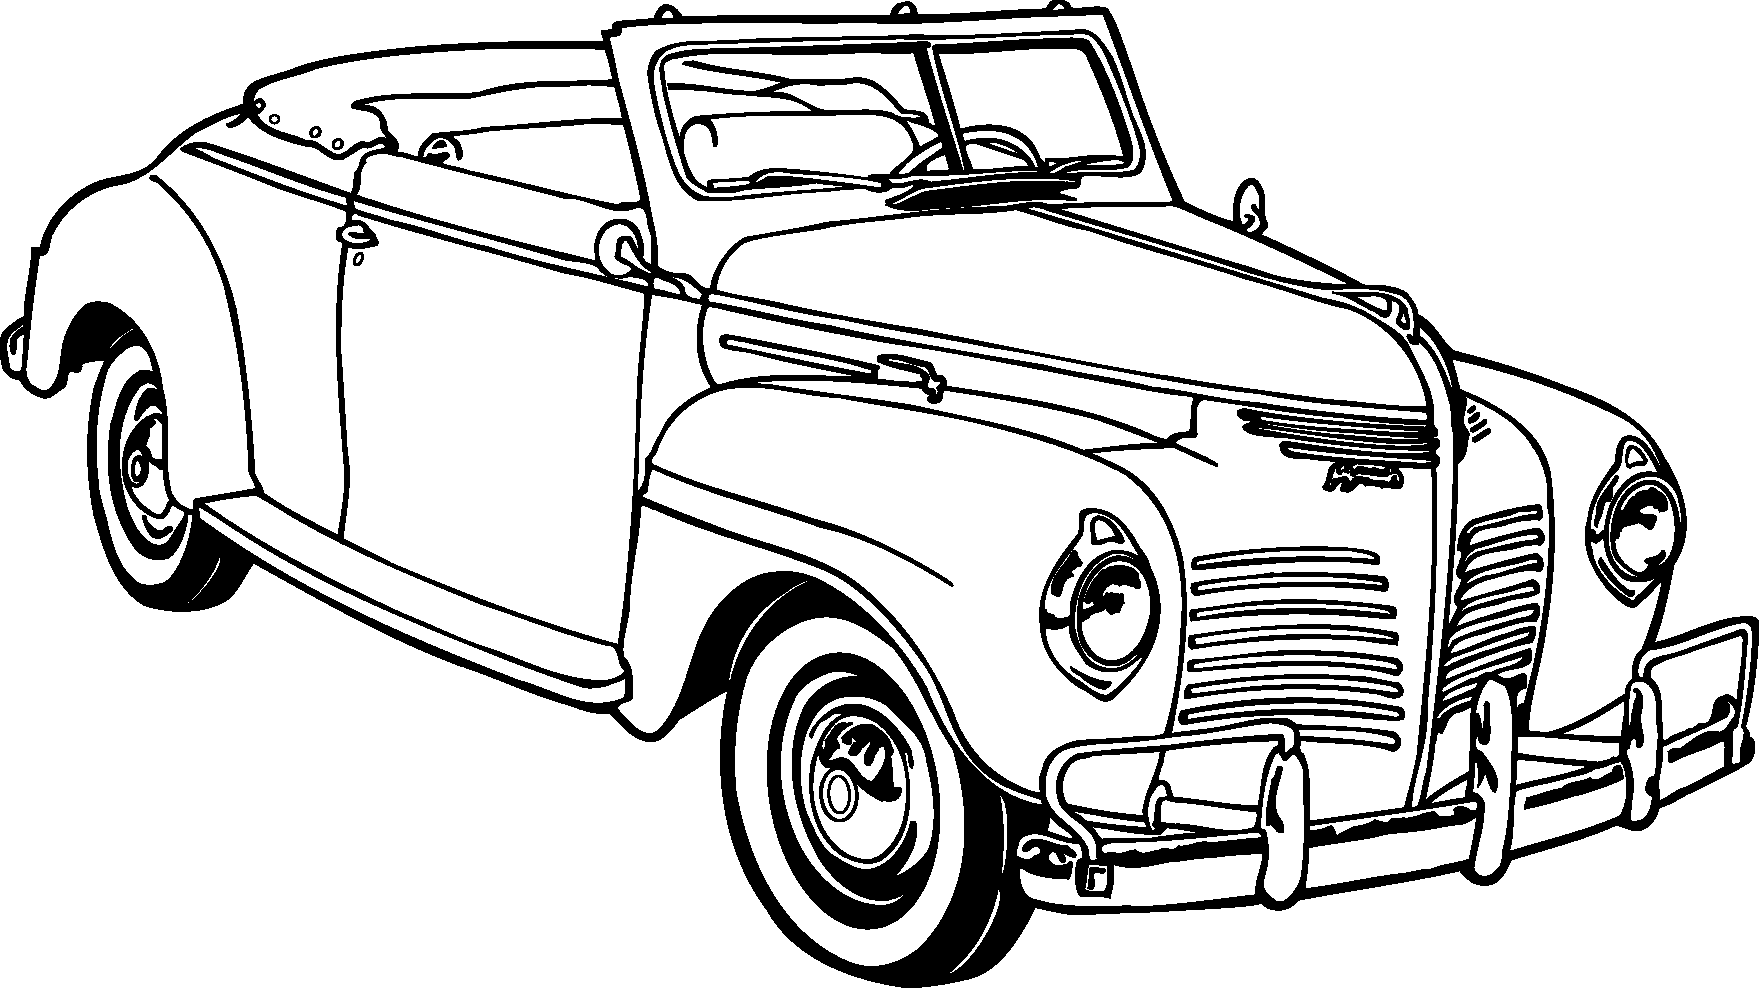 Transport Classic Cars Silhouettes Vector Icon Template